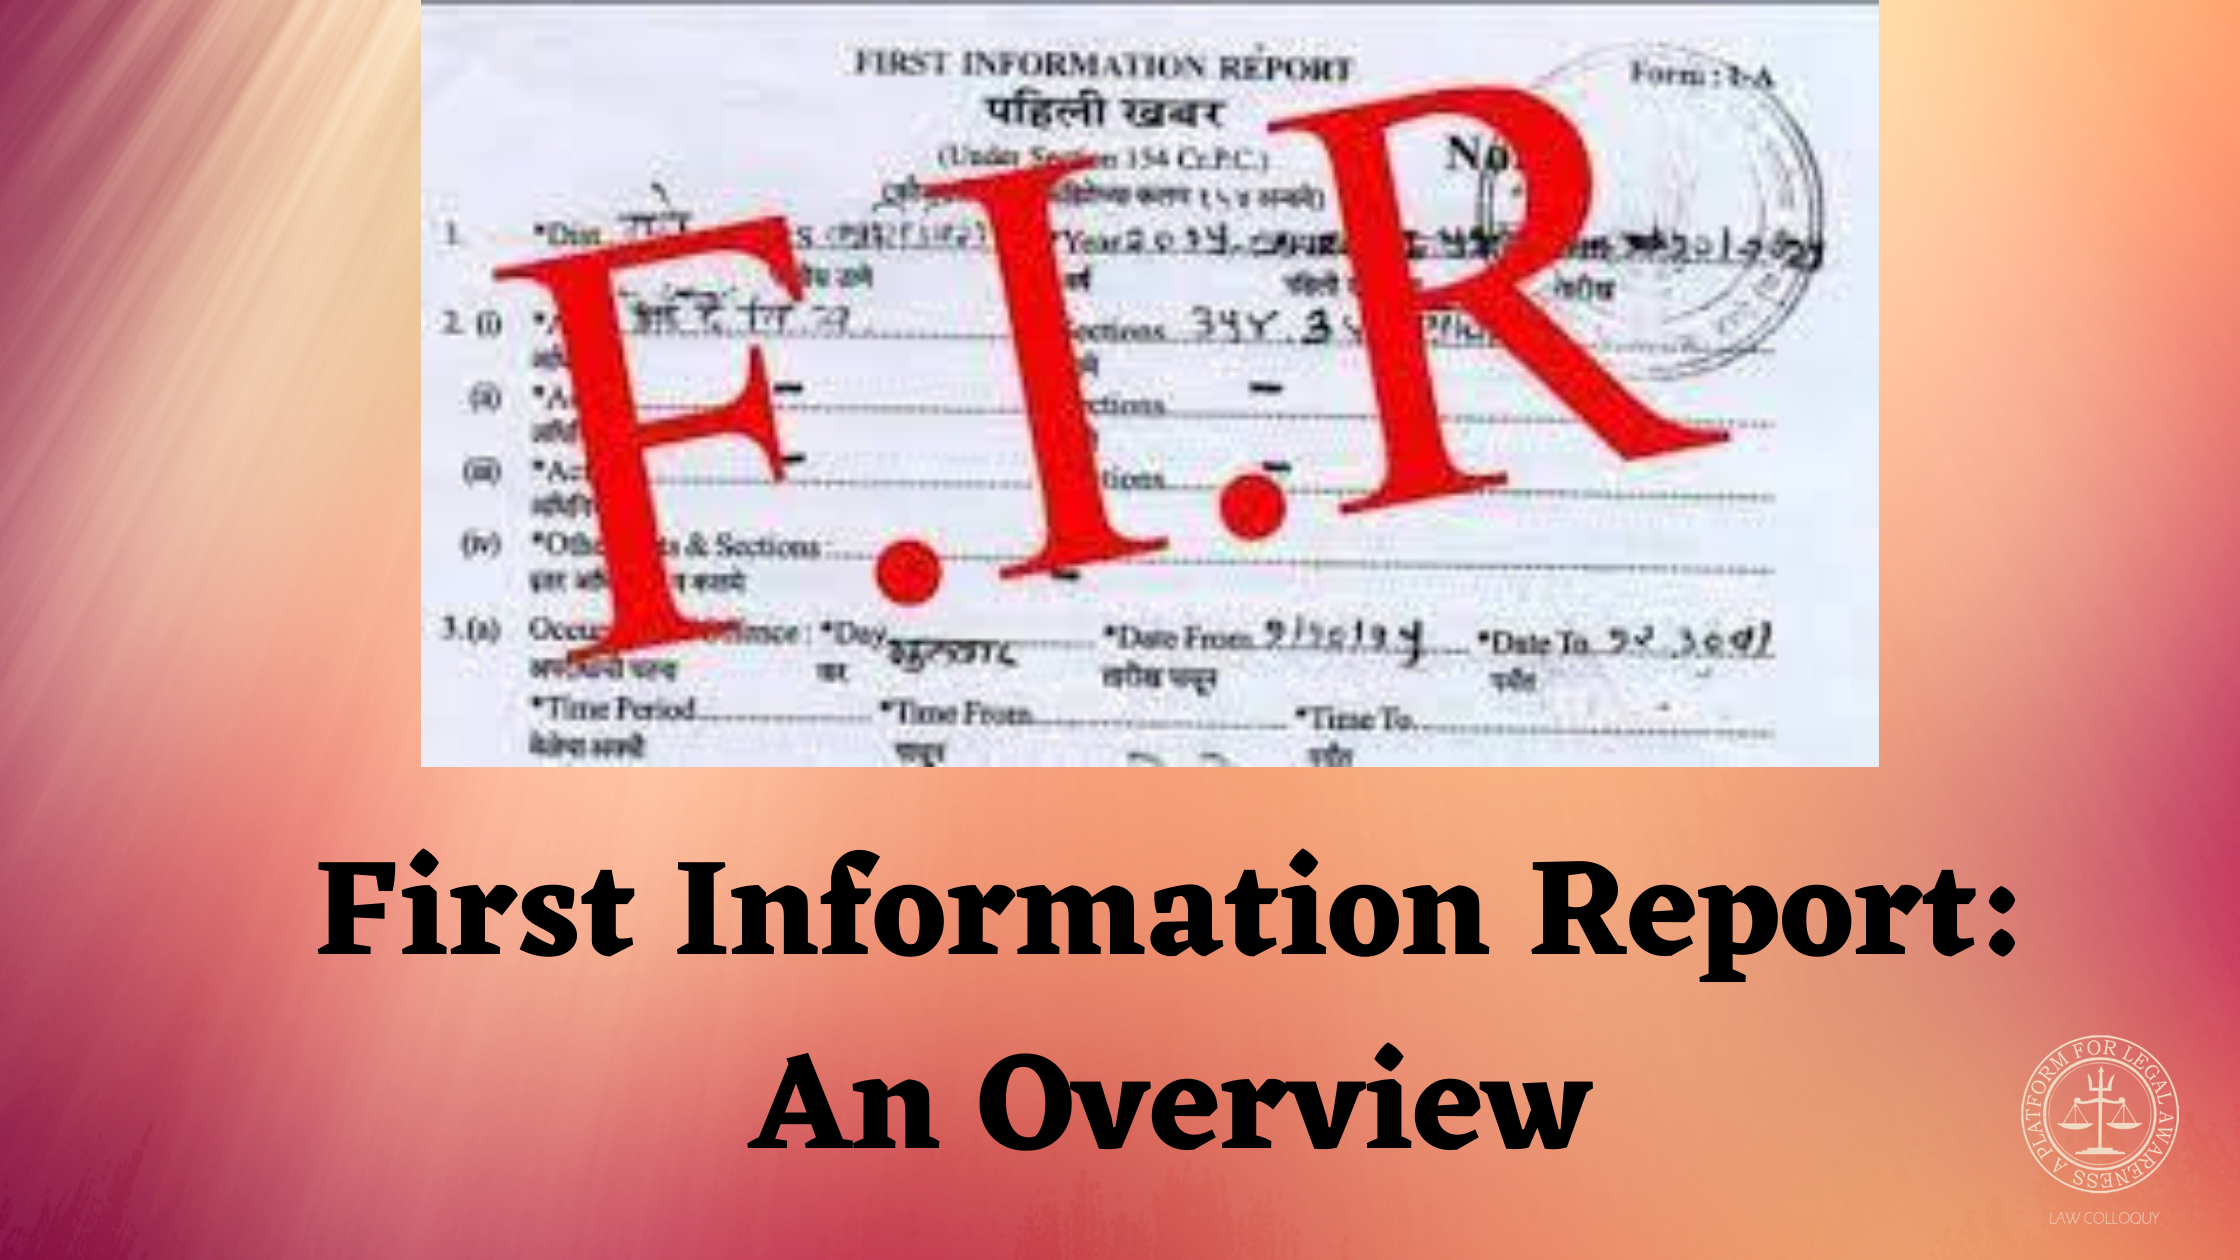 First Information Report (FIR): An Overview